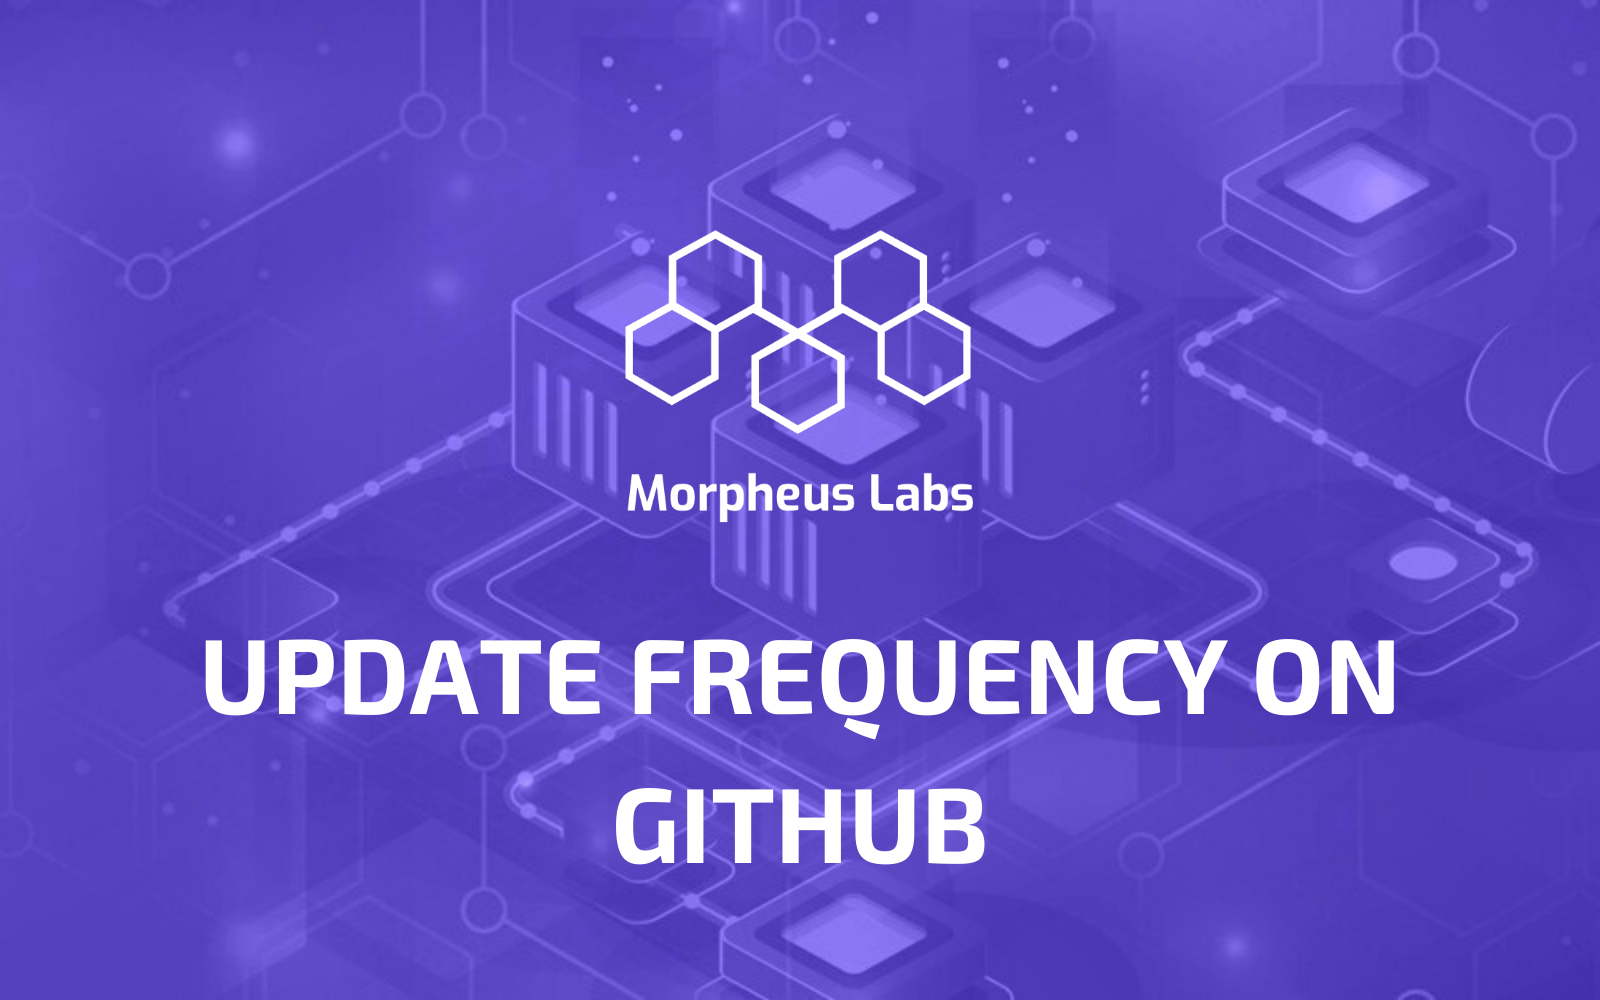 Morpheus Labs' Update Frequency on Github